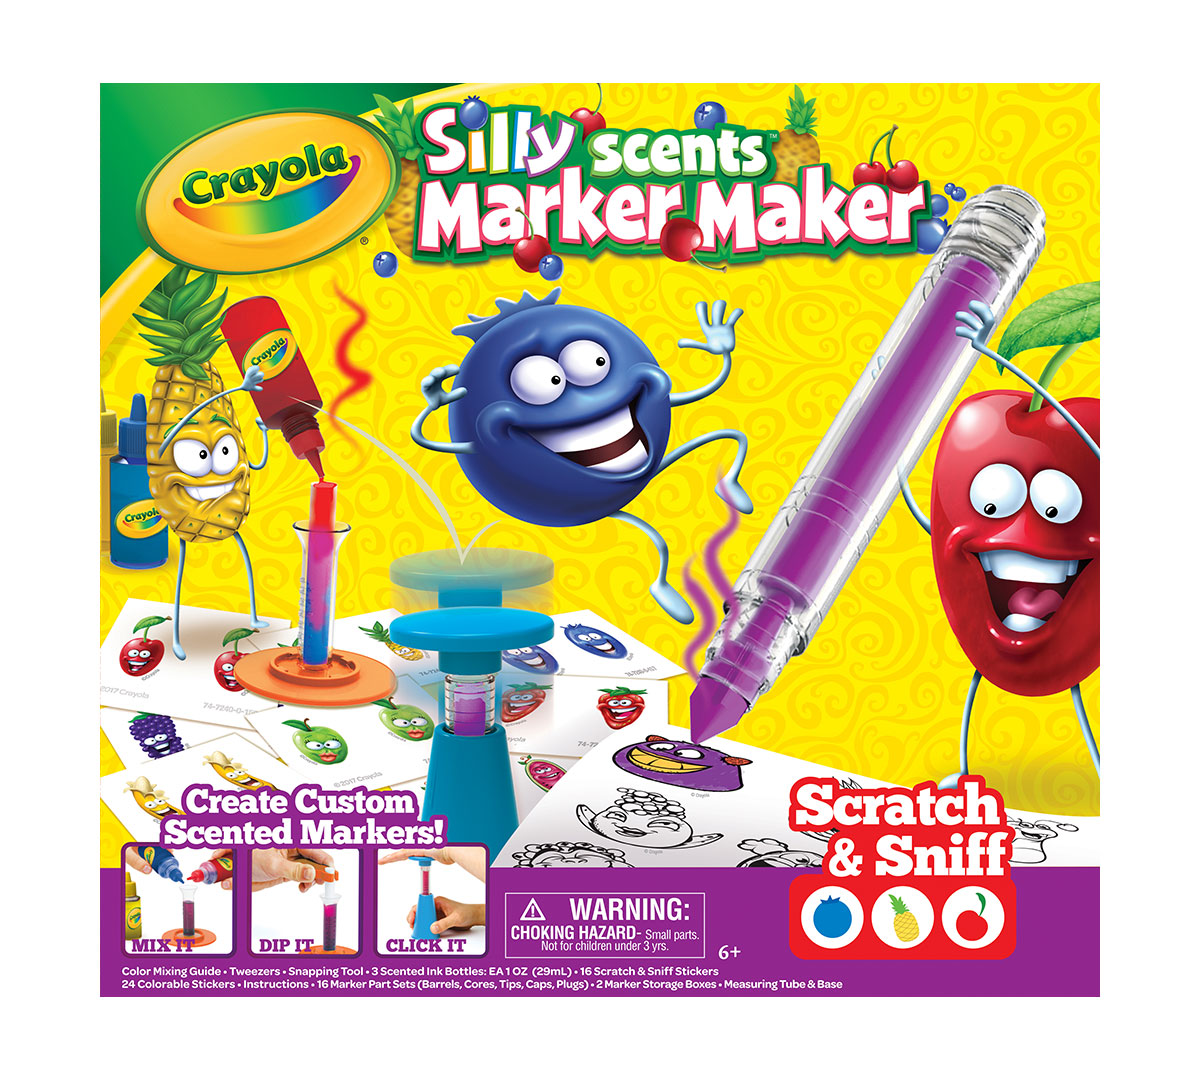 Crayola Silly Scents Marker Maker Creative Art Tool Make